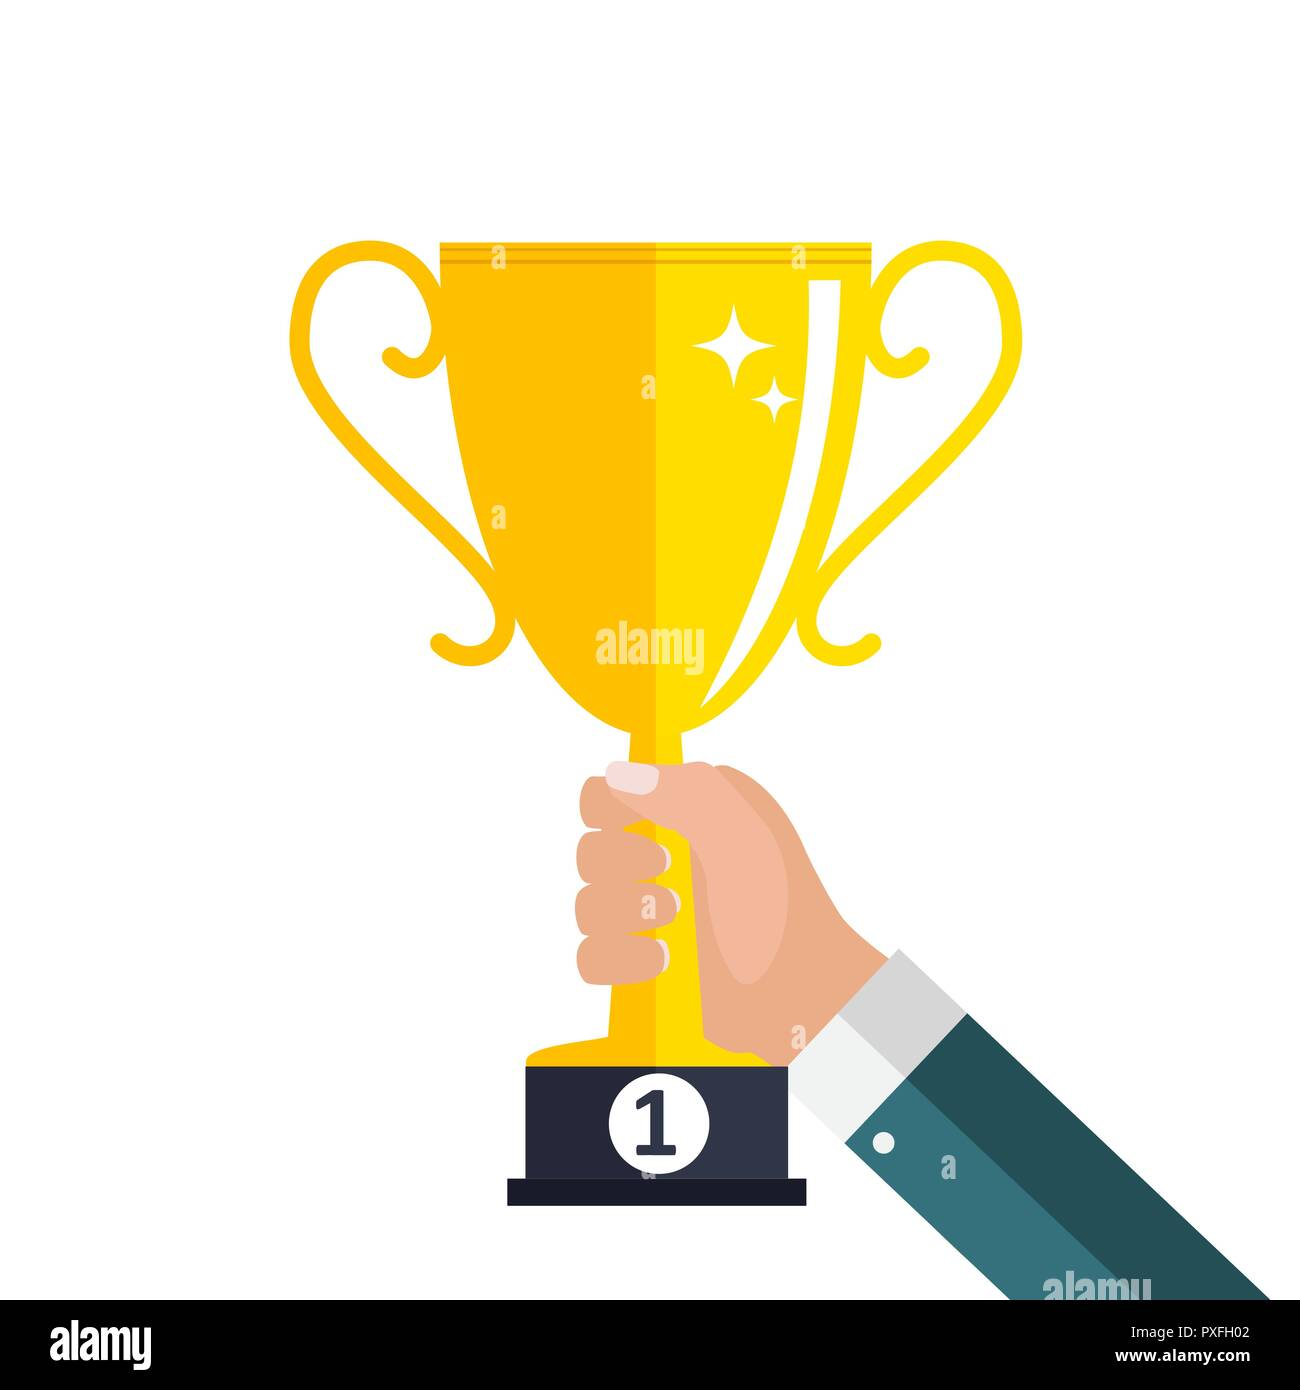 gold cup prize trophy winner icon stock vector image art alamy https www alamy com gold cup prize trophy winner icon image222848082 html